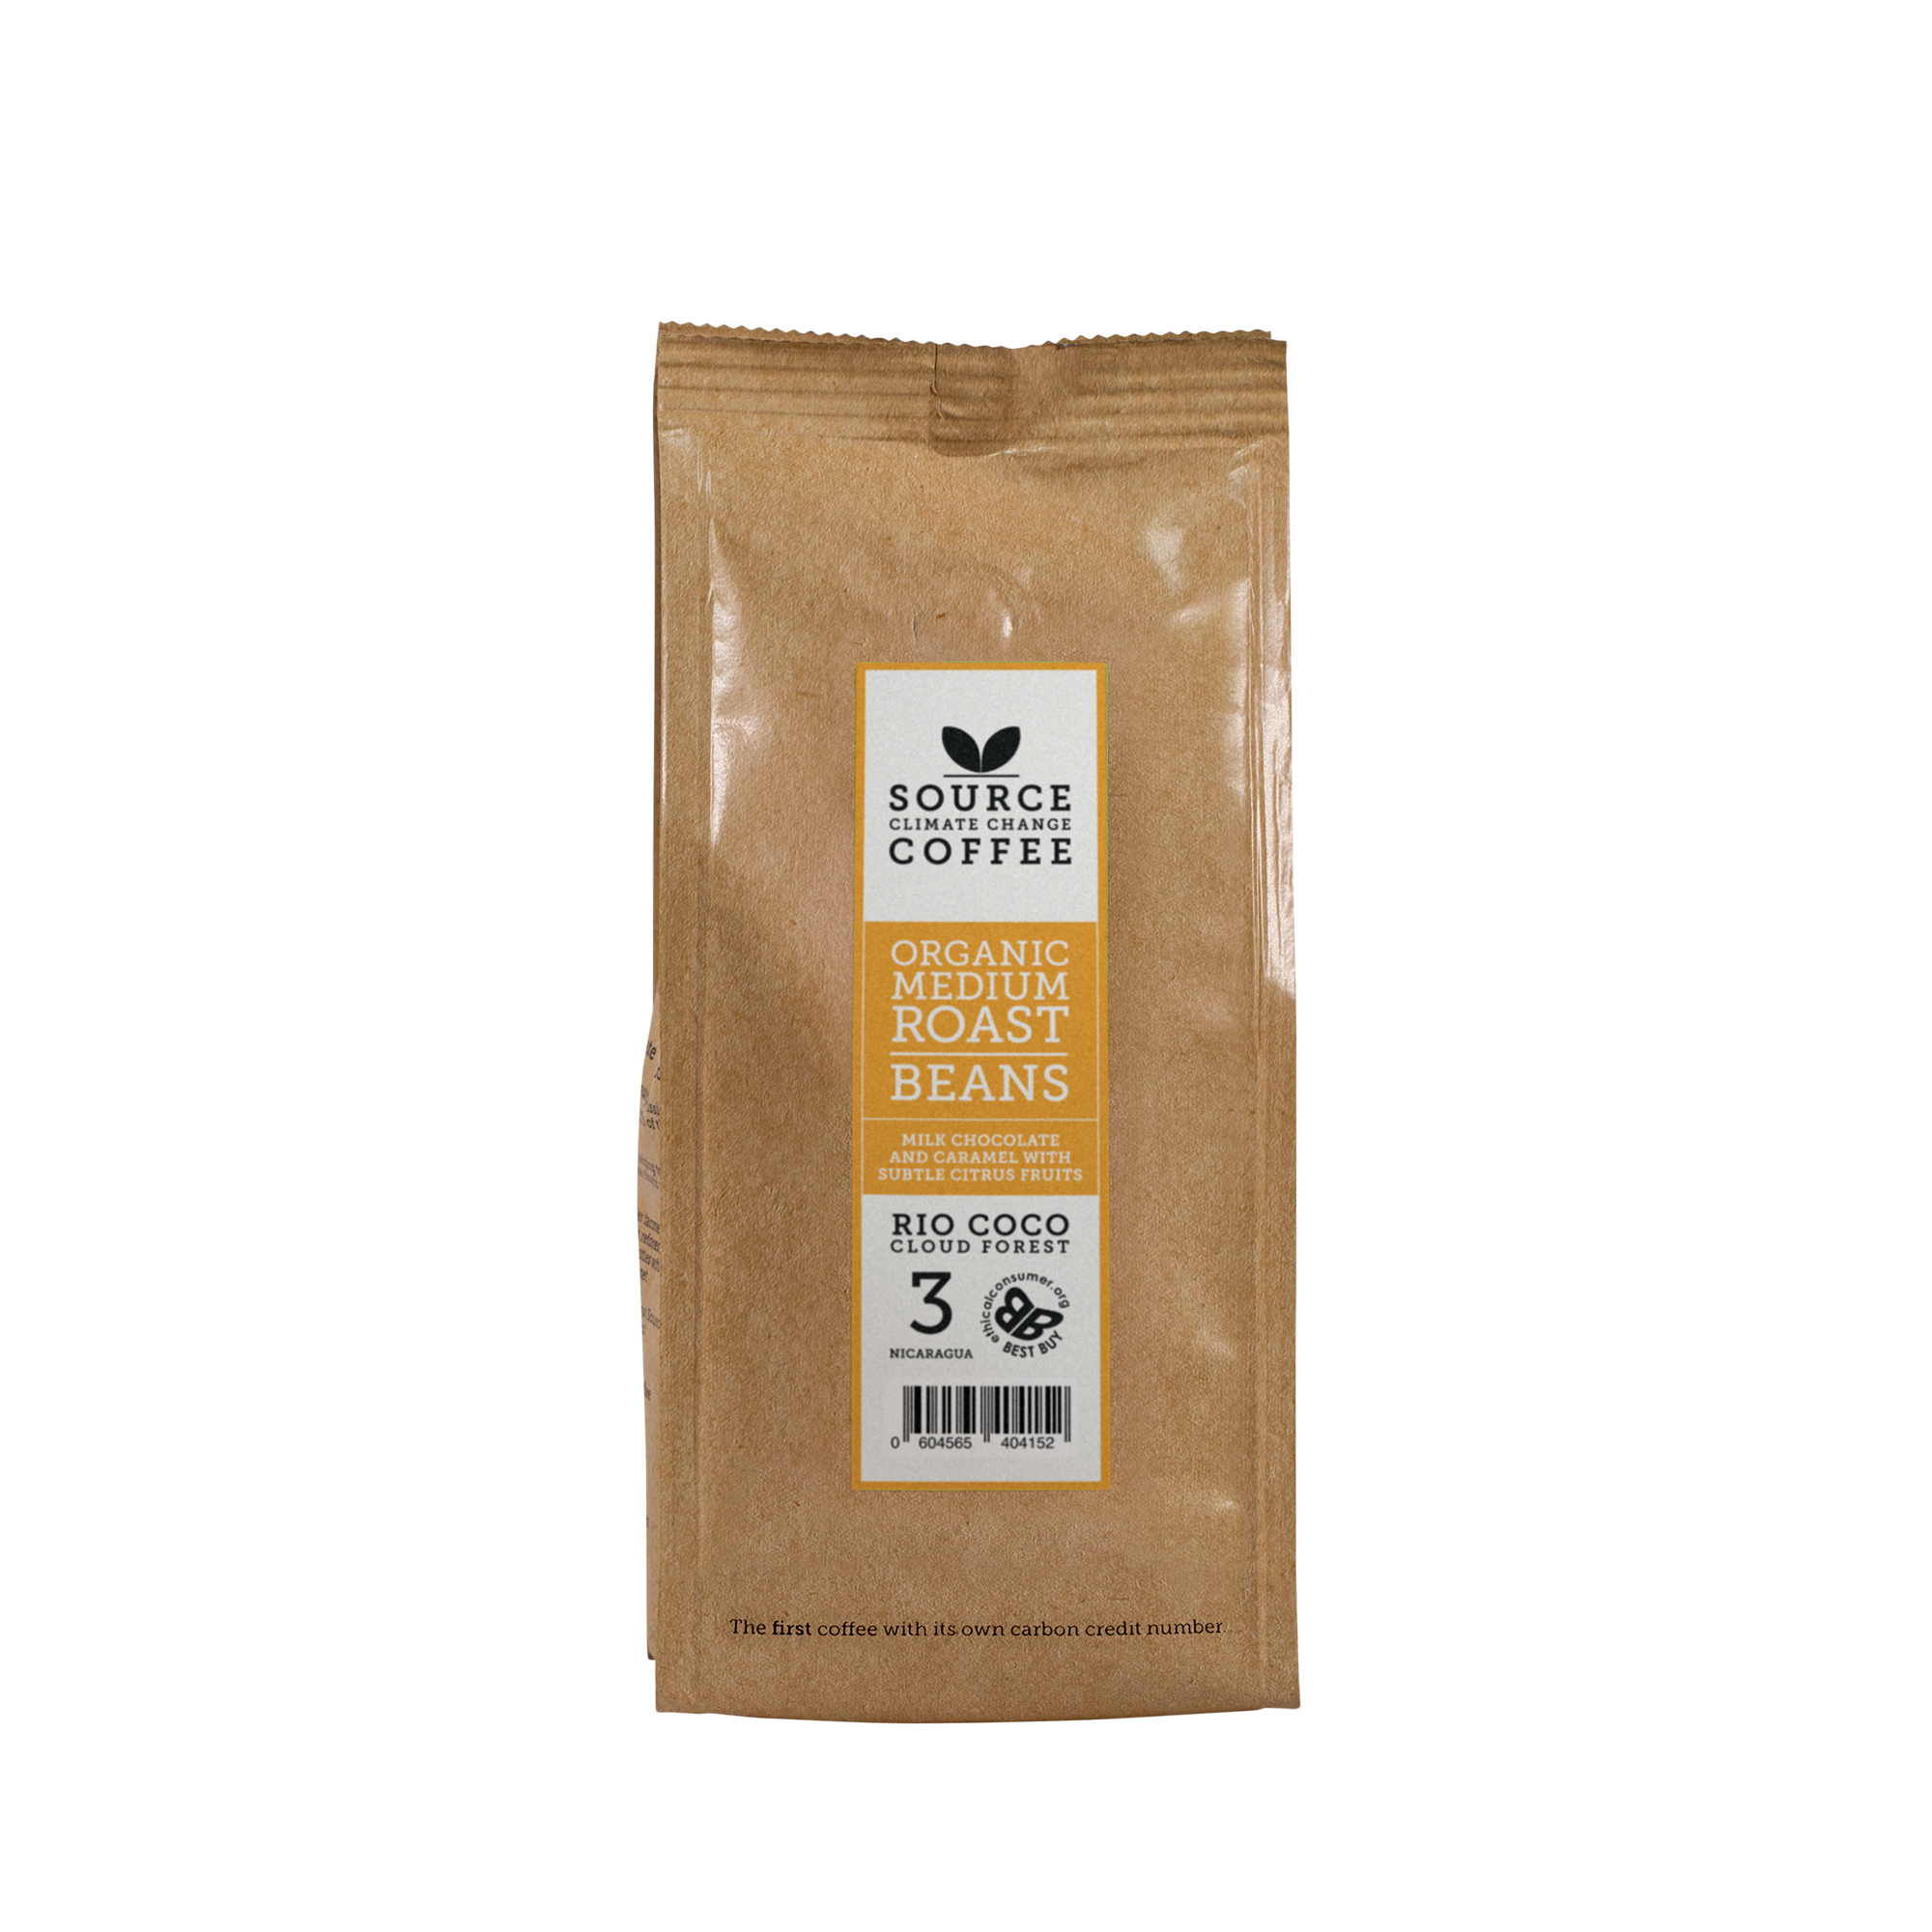 Organic Rio Coco Cloud Forest Coffee: Nicaragua Strength 3 - Source Climate Change Coffee